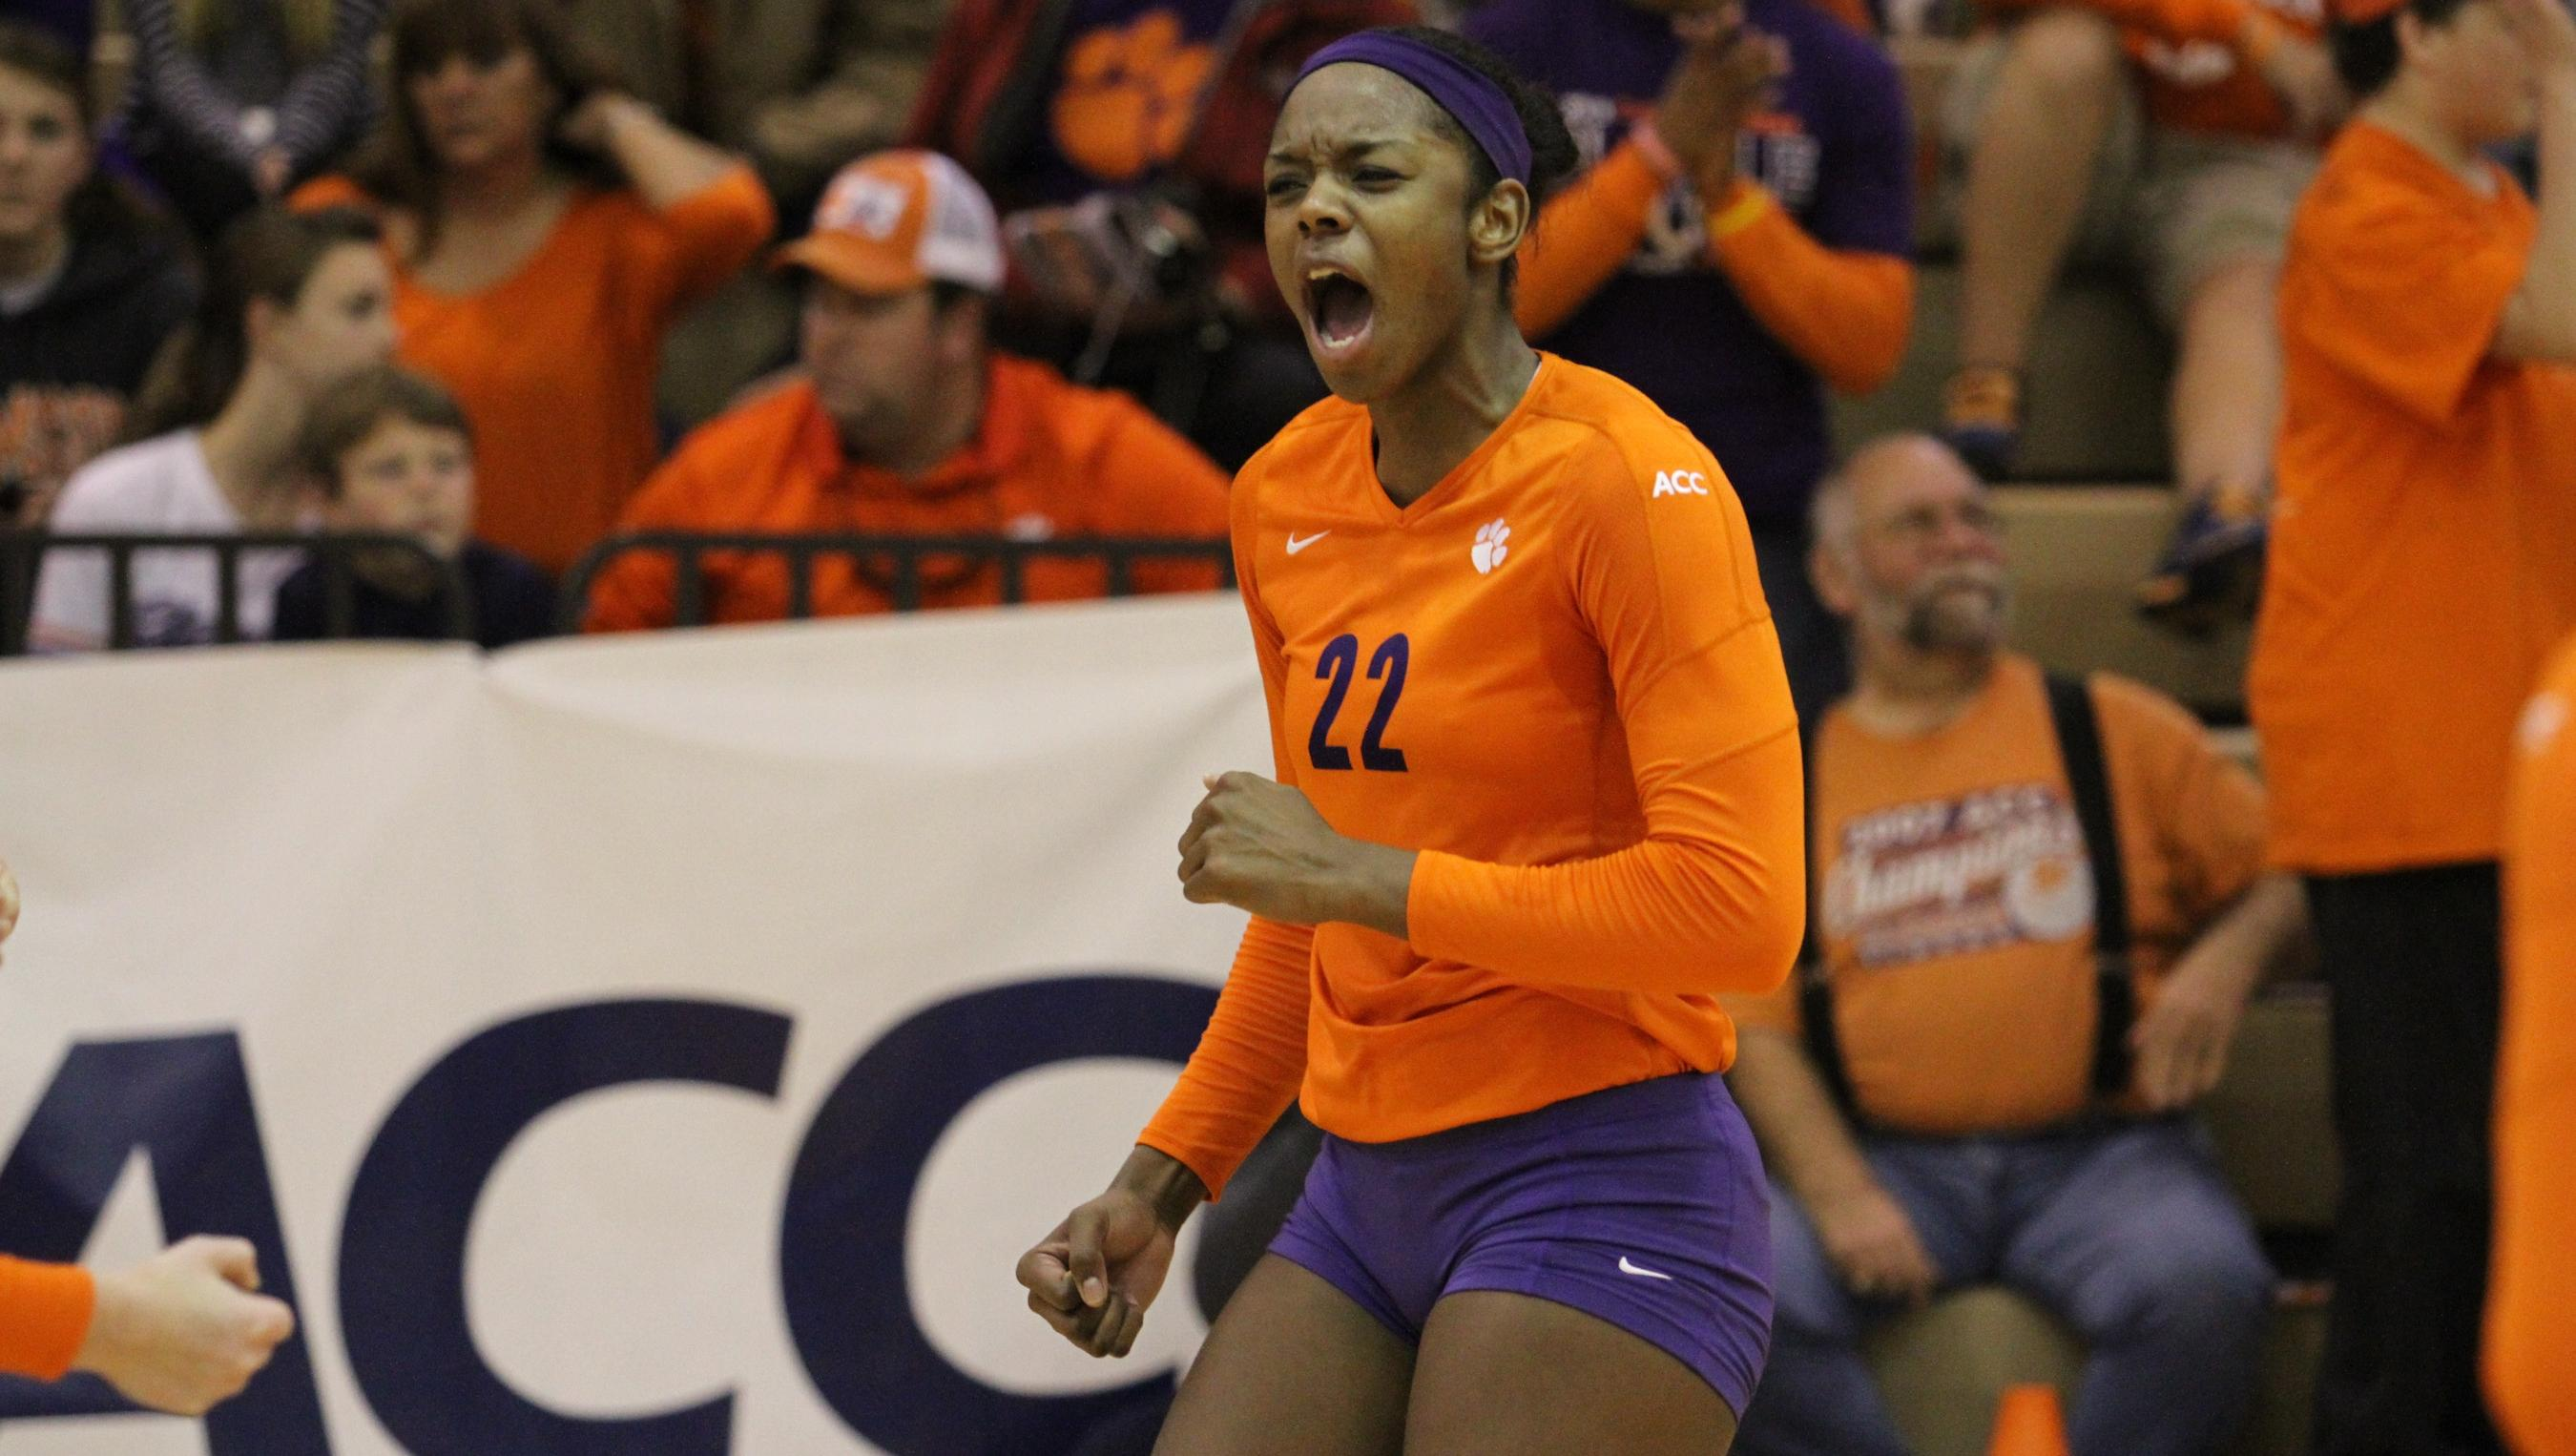 @ClemsonVB Falls to No. 16 Florida State on Wednesday